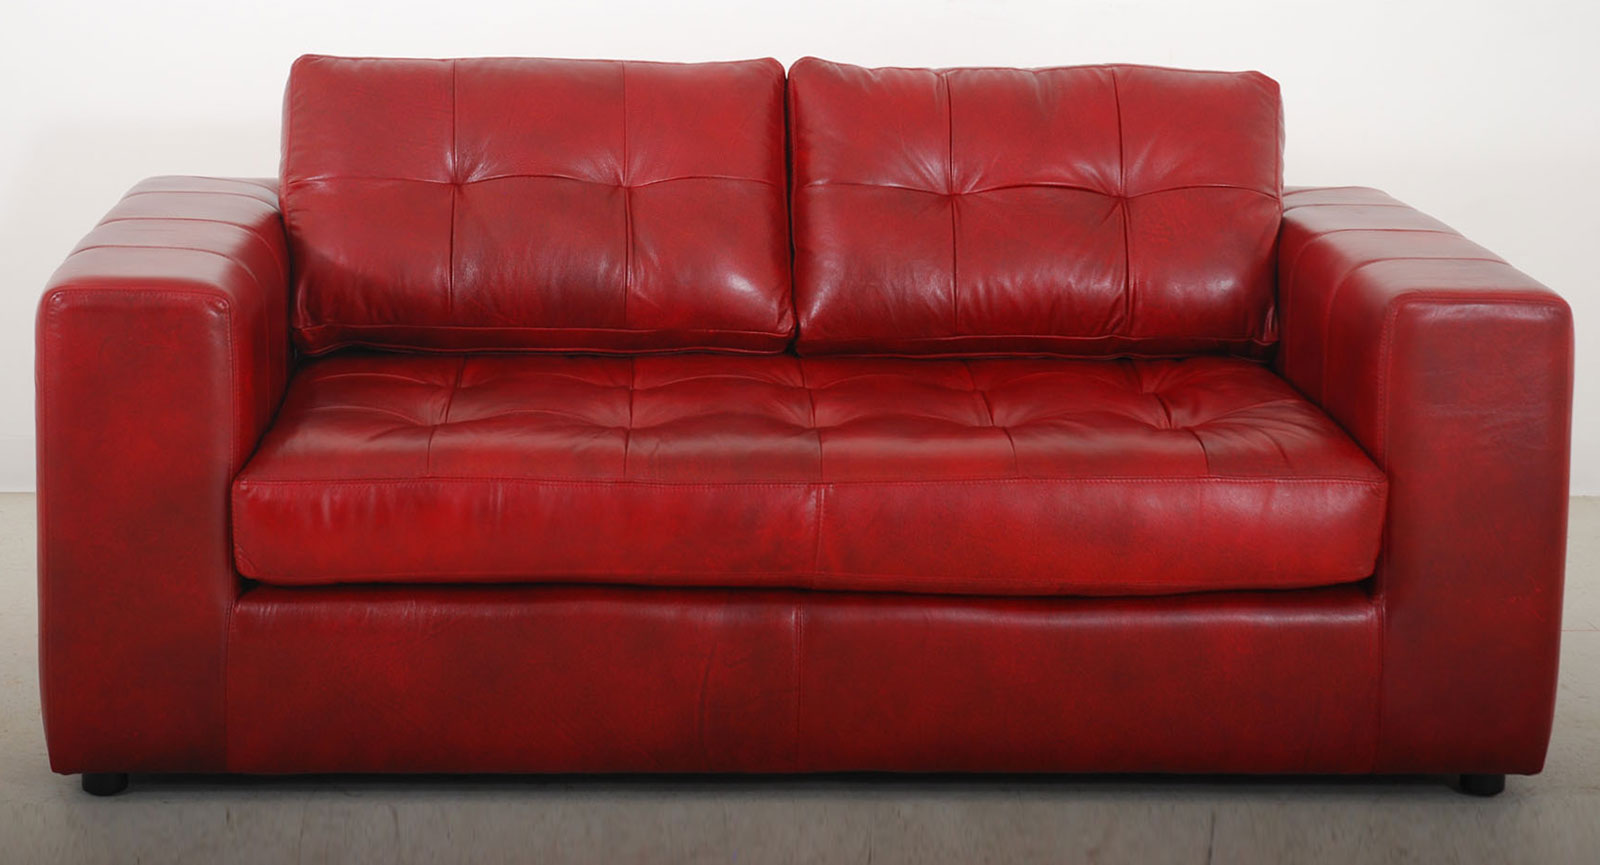 Gev One Cushion Loveseat